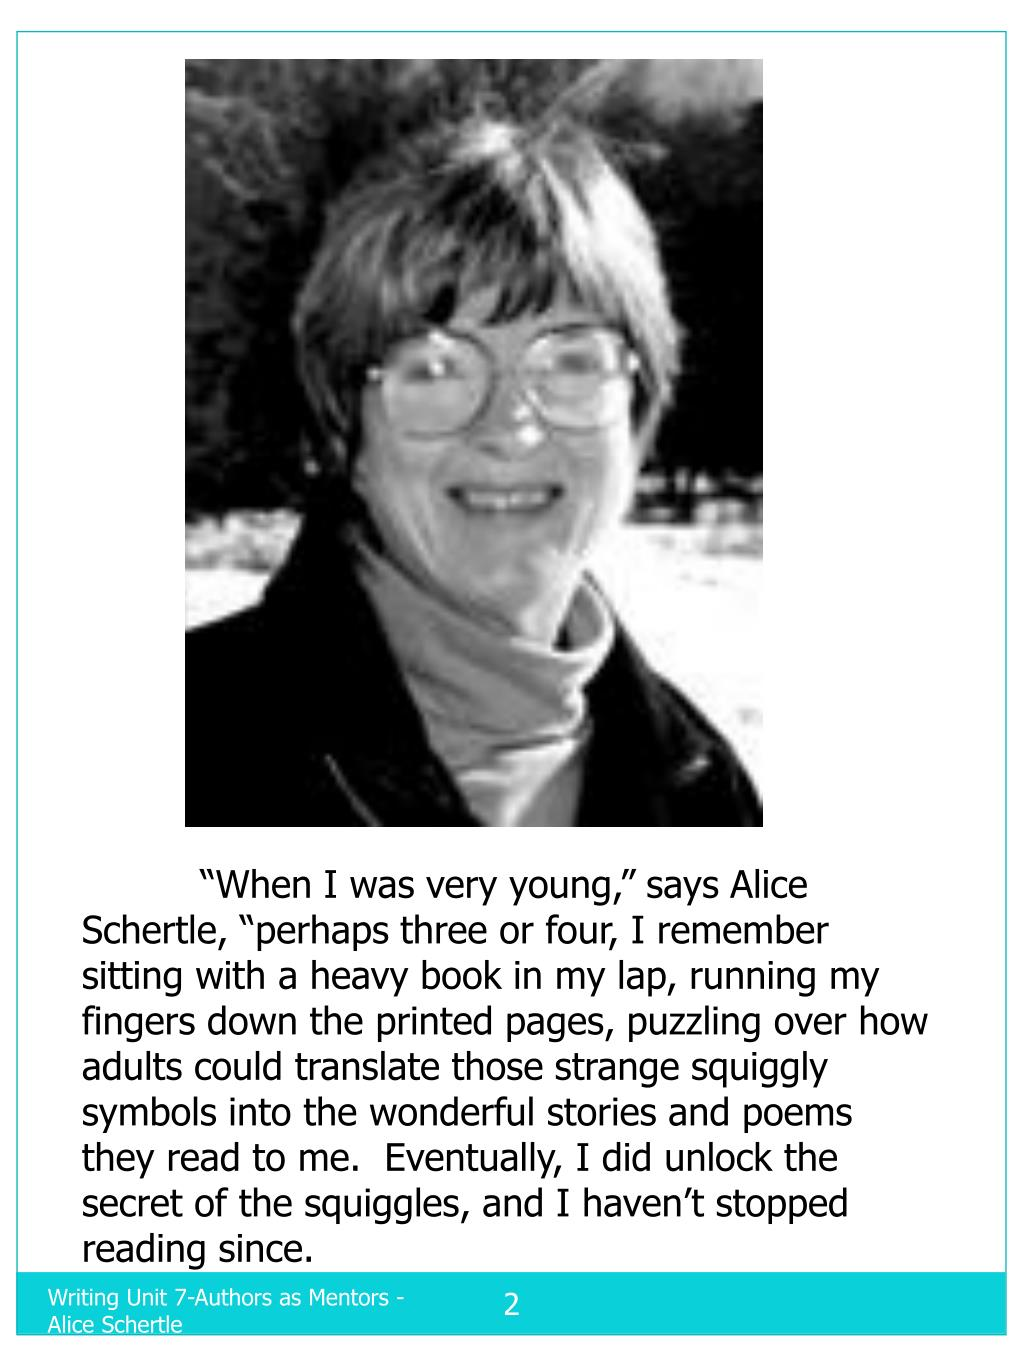 """""""When I was very young,"""" says Alice Schertle, """"perhaps three or four, I remember sitting with a heavy book in my lap, running my fingers down the printed pages, puzzling over how adults could translate those strange squiggly symbols into the wonderful stories and poems they read to me.  Eventually, I did unlock the secret of the squiggles, and I haven't stopped reading since."""